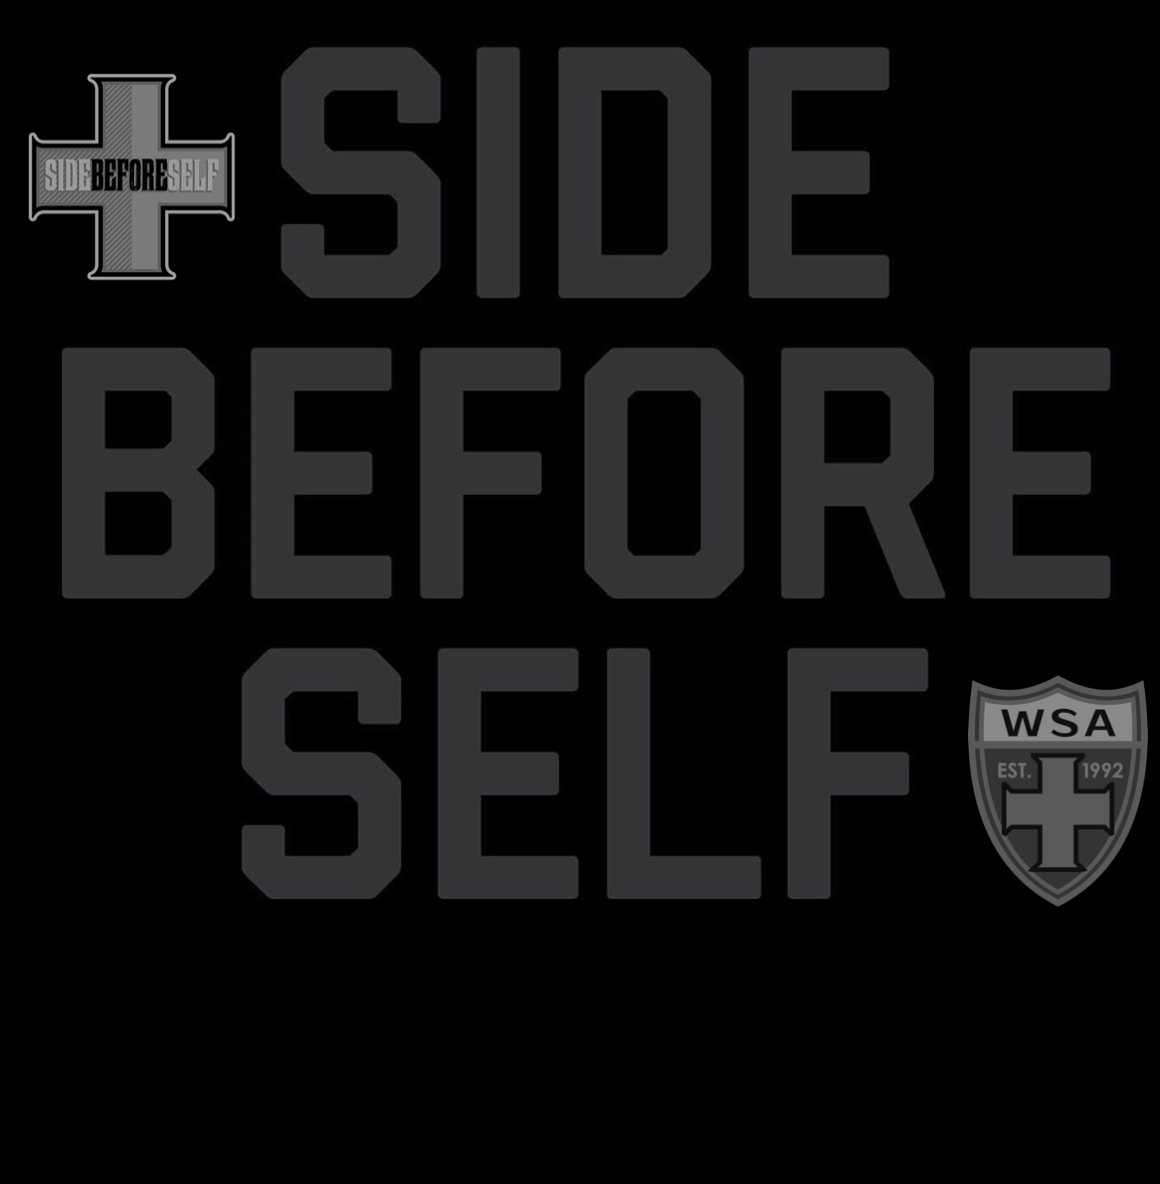 SIDE BEFORE SELF.  EVERY TIME.